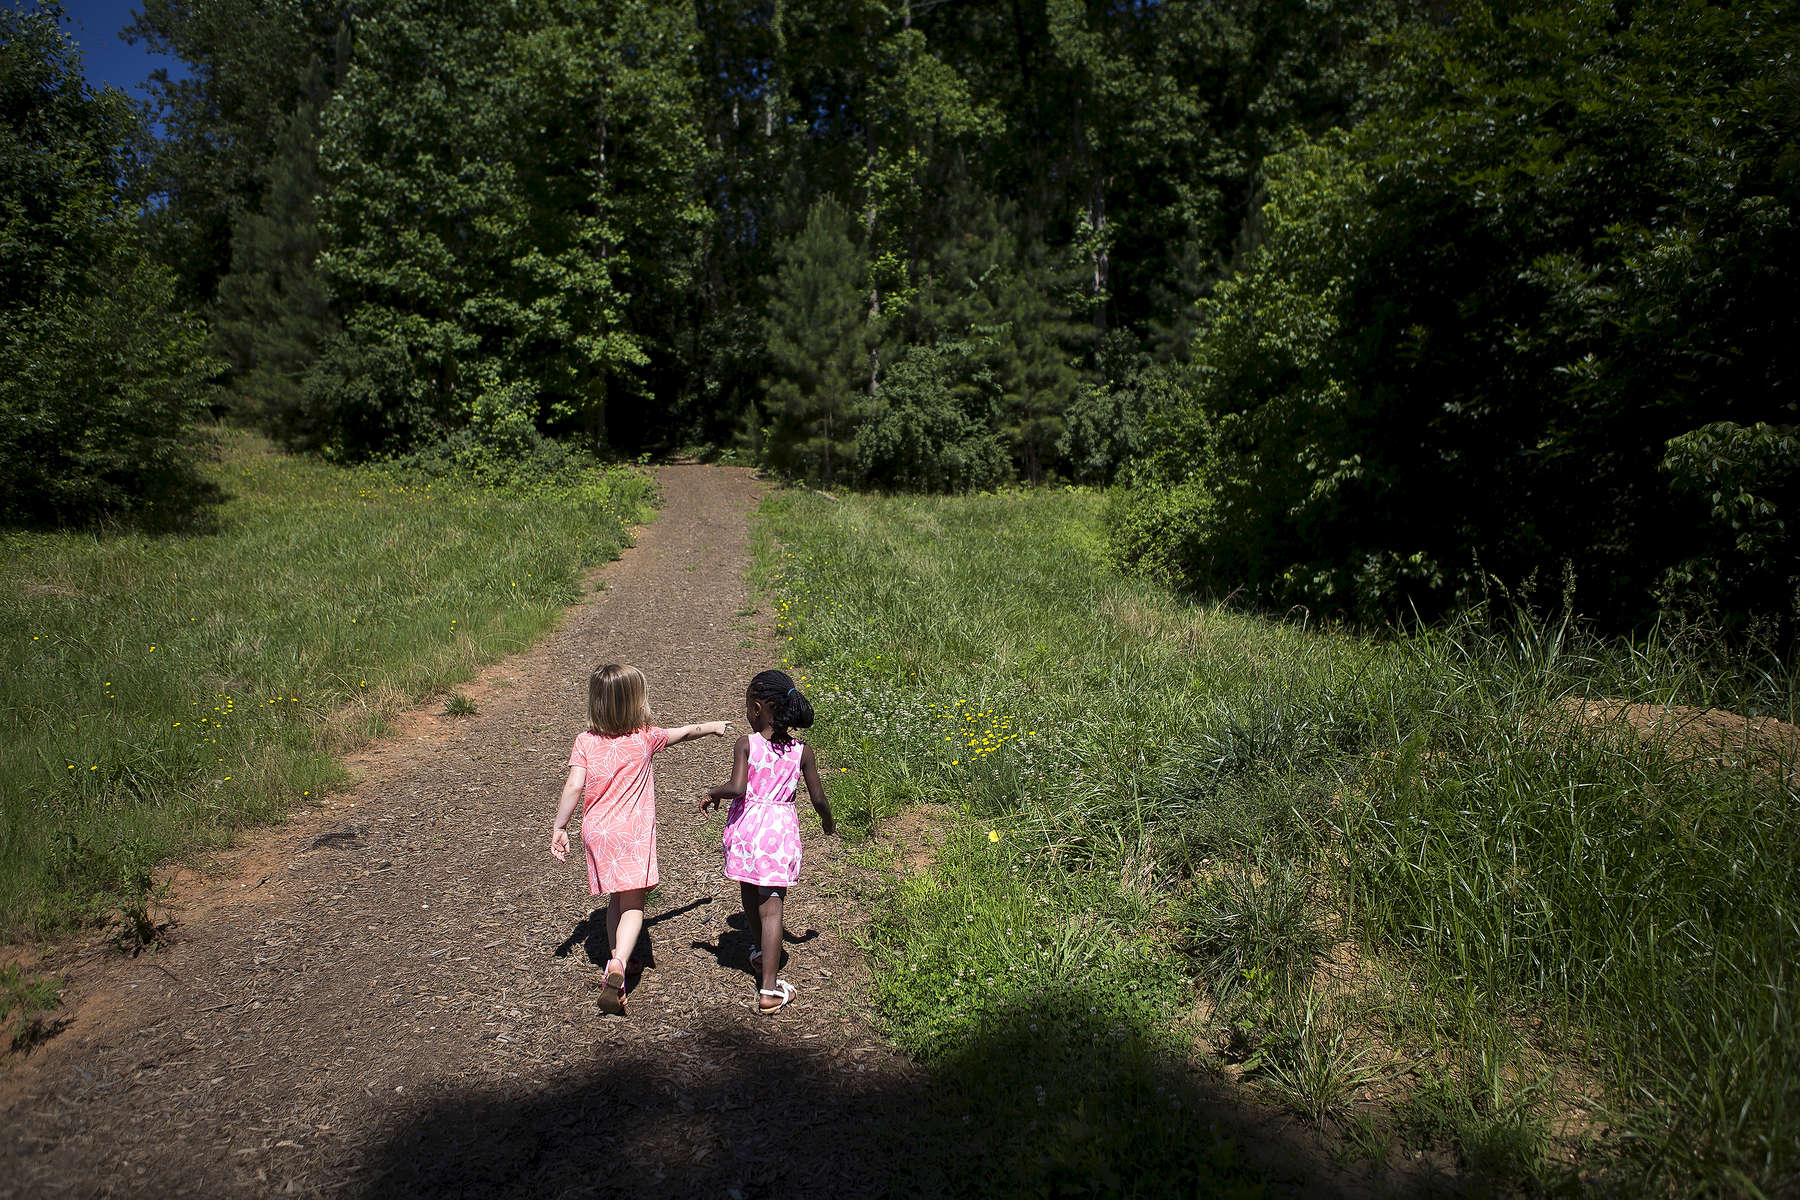 POY: Runner UpMadeline Gray, North State Journal Carina, 5, left, shows her new sister Sifa, 5, right, around the path near their house on Sifa's first full day in the United States with her adopted family.